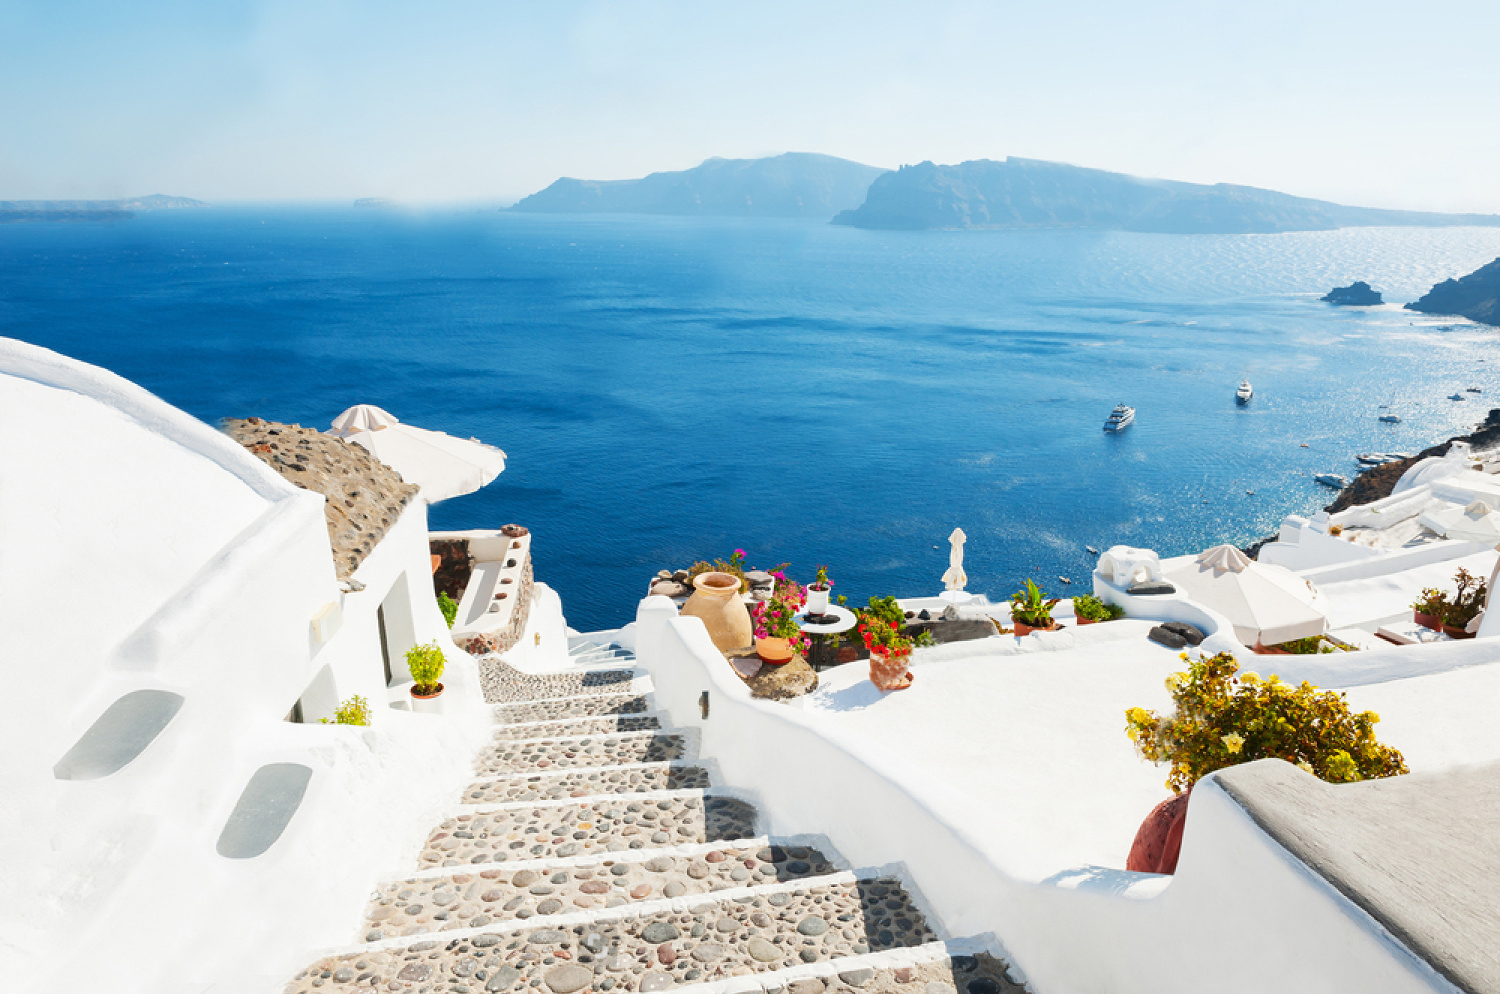 Wallpaper Santorini Morning Architecture Greece Wall Mural Peel And Stick Large Photo Removable Adhesive Vinyl